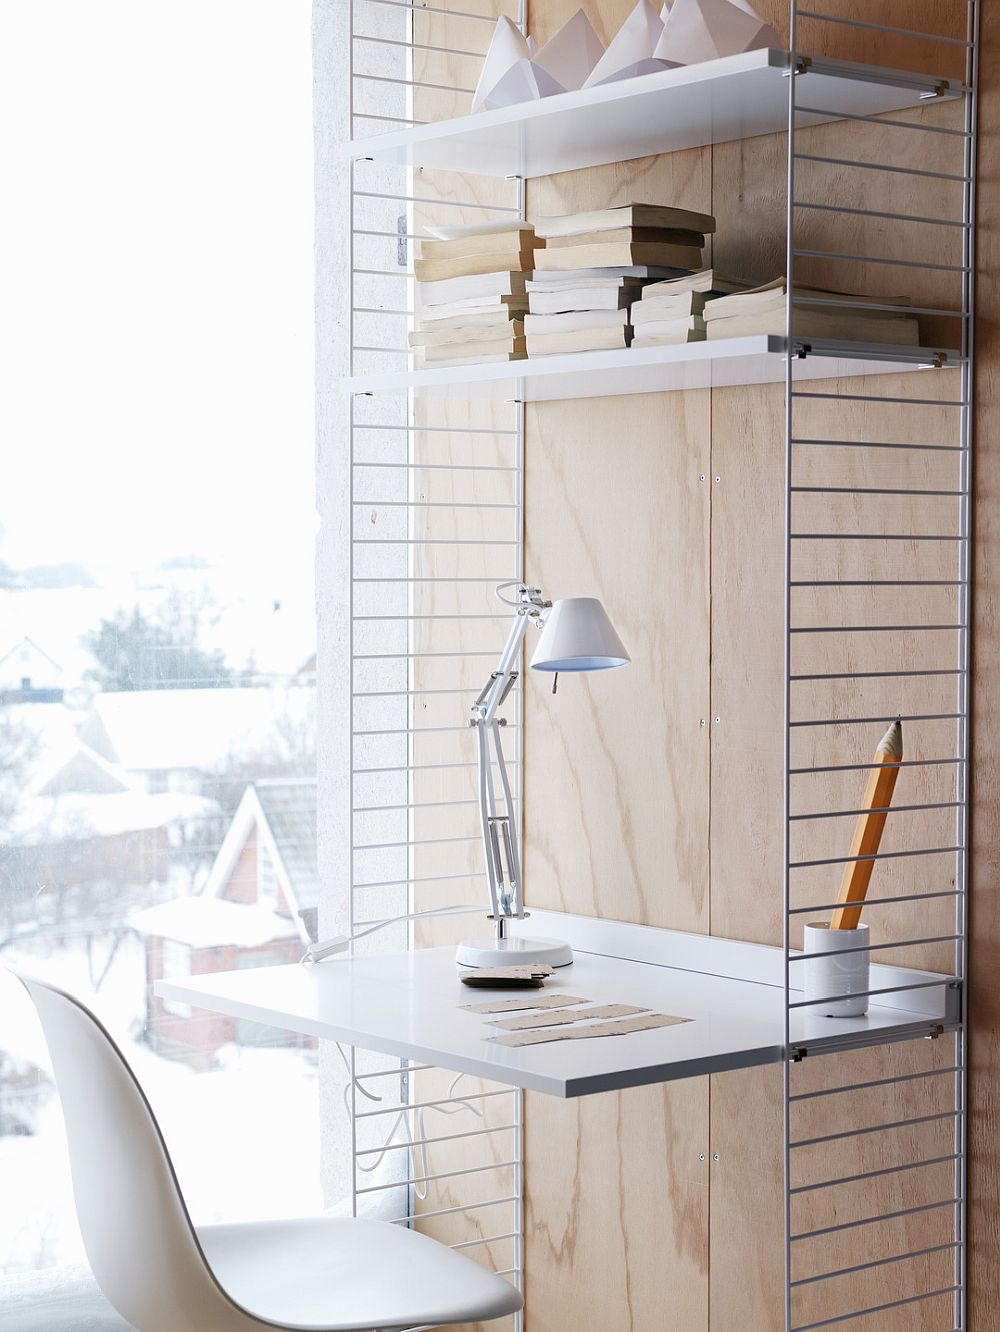 New String workspace fits into the tiniest of spaces with ease